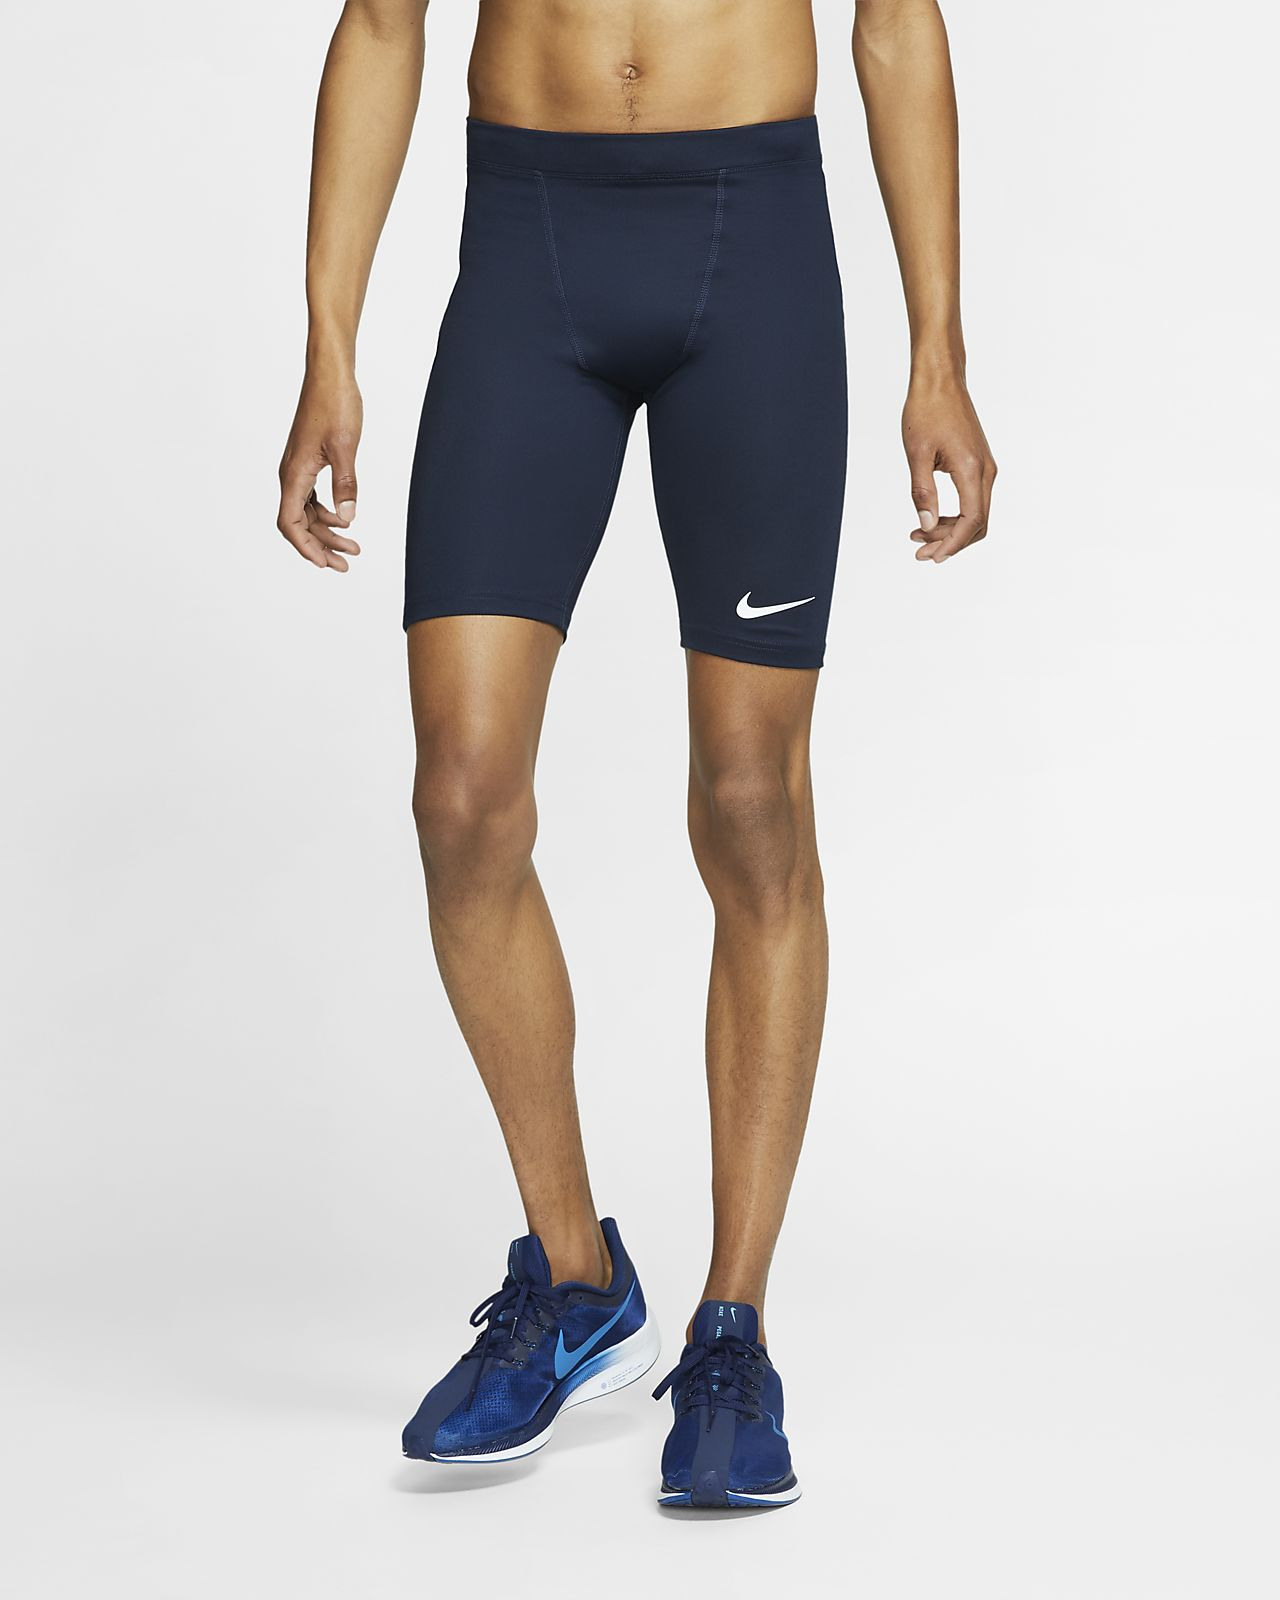 Nike Power Men's Running Tights